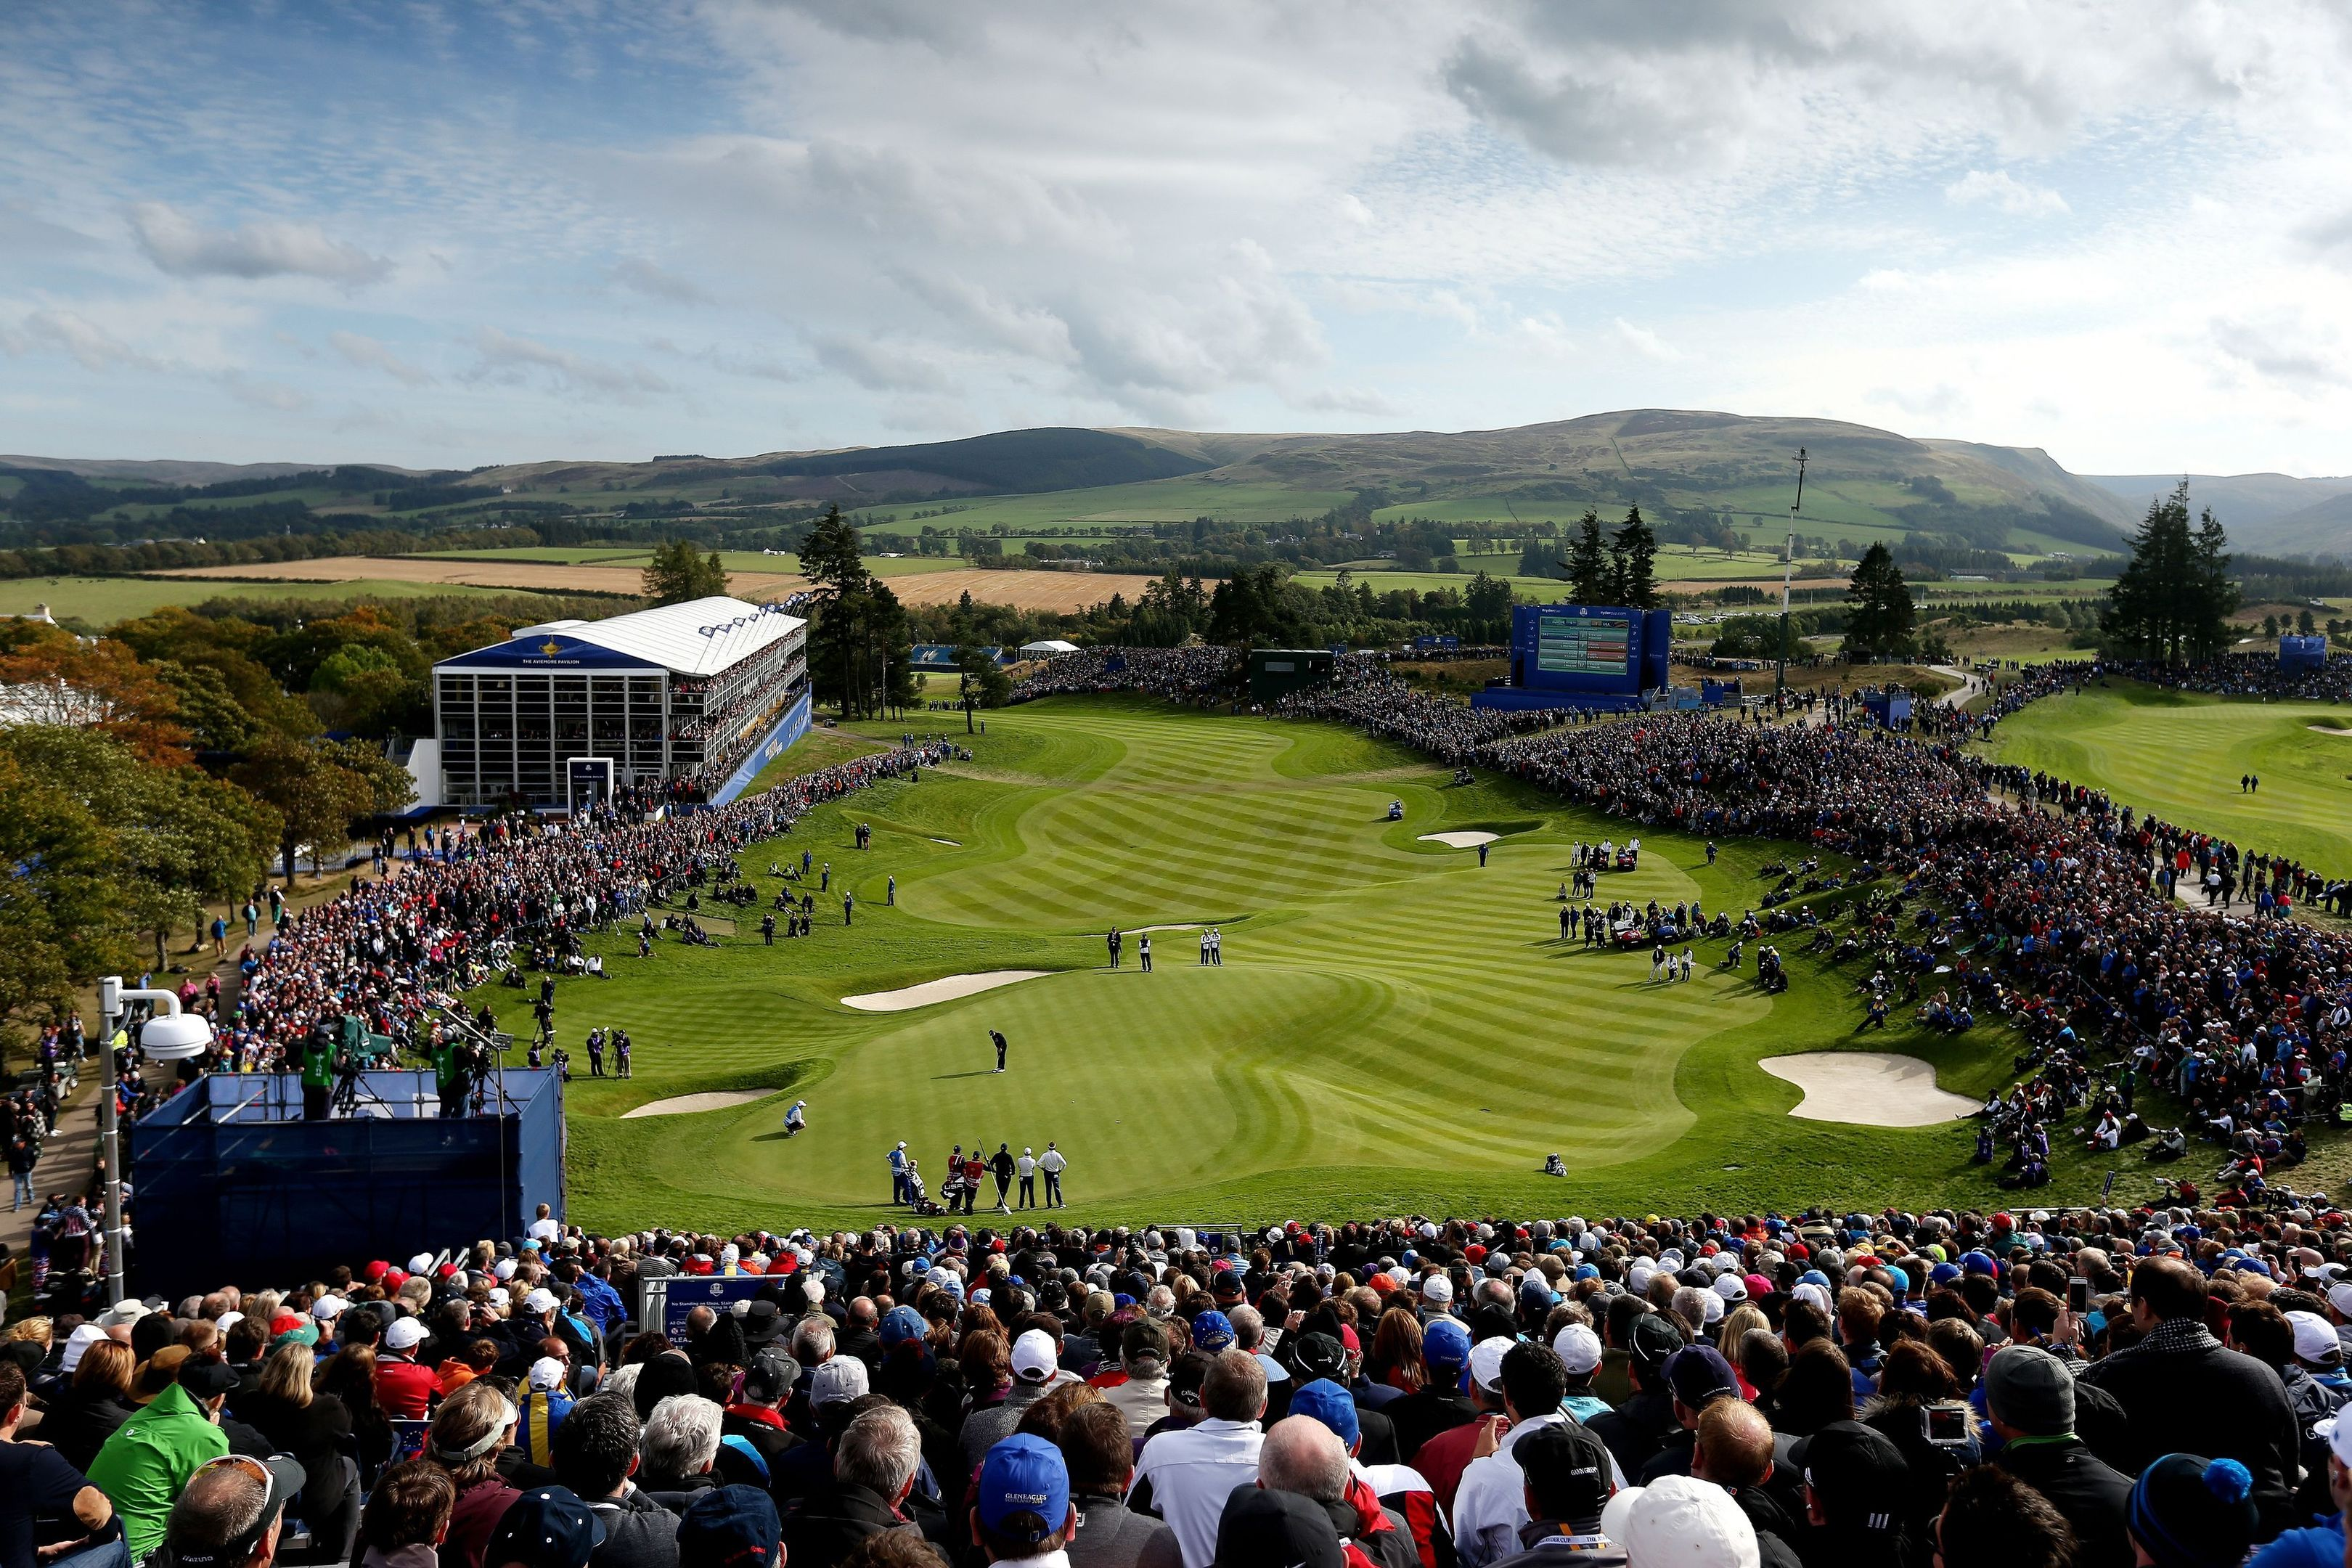 The Ryder Cup of 2014 was a triumph for Gleneagles and Perth and Kinross as a whole. It is hoped the 2019 Solheim Cup can mirror that success.